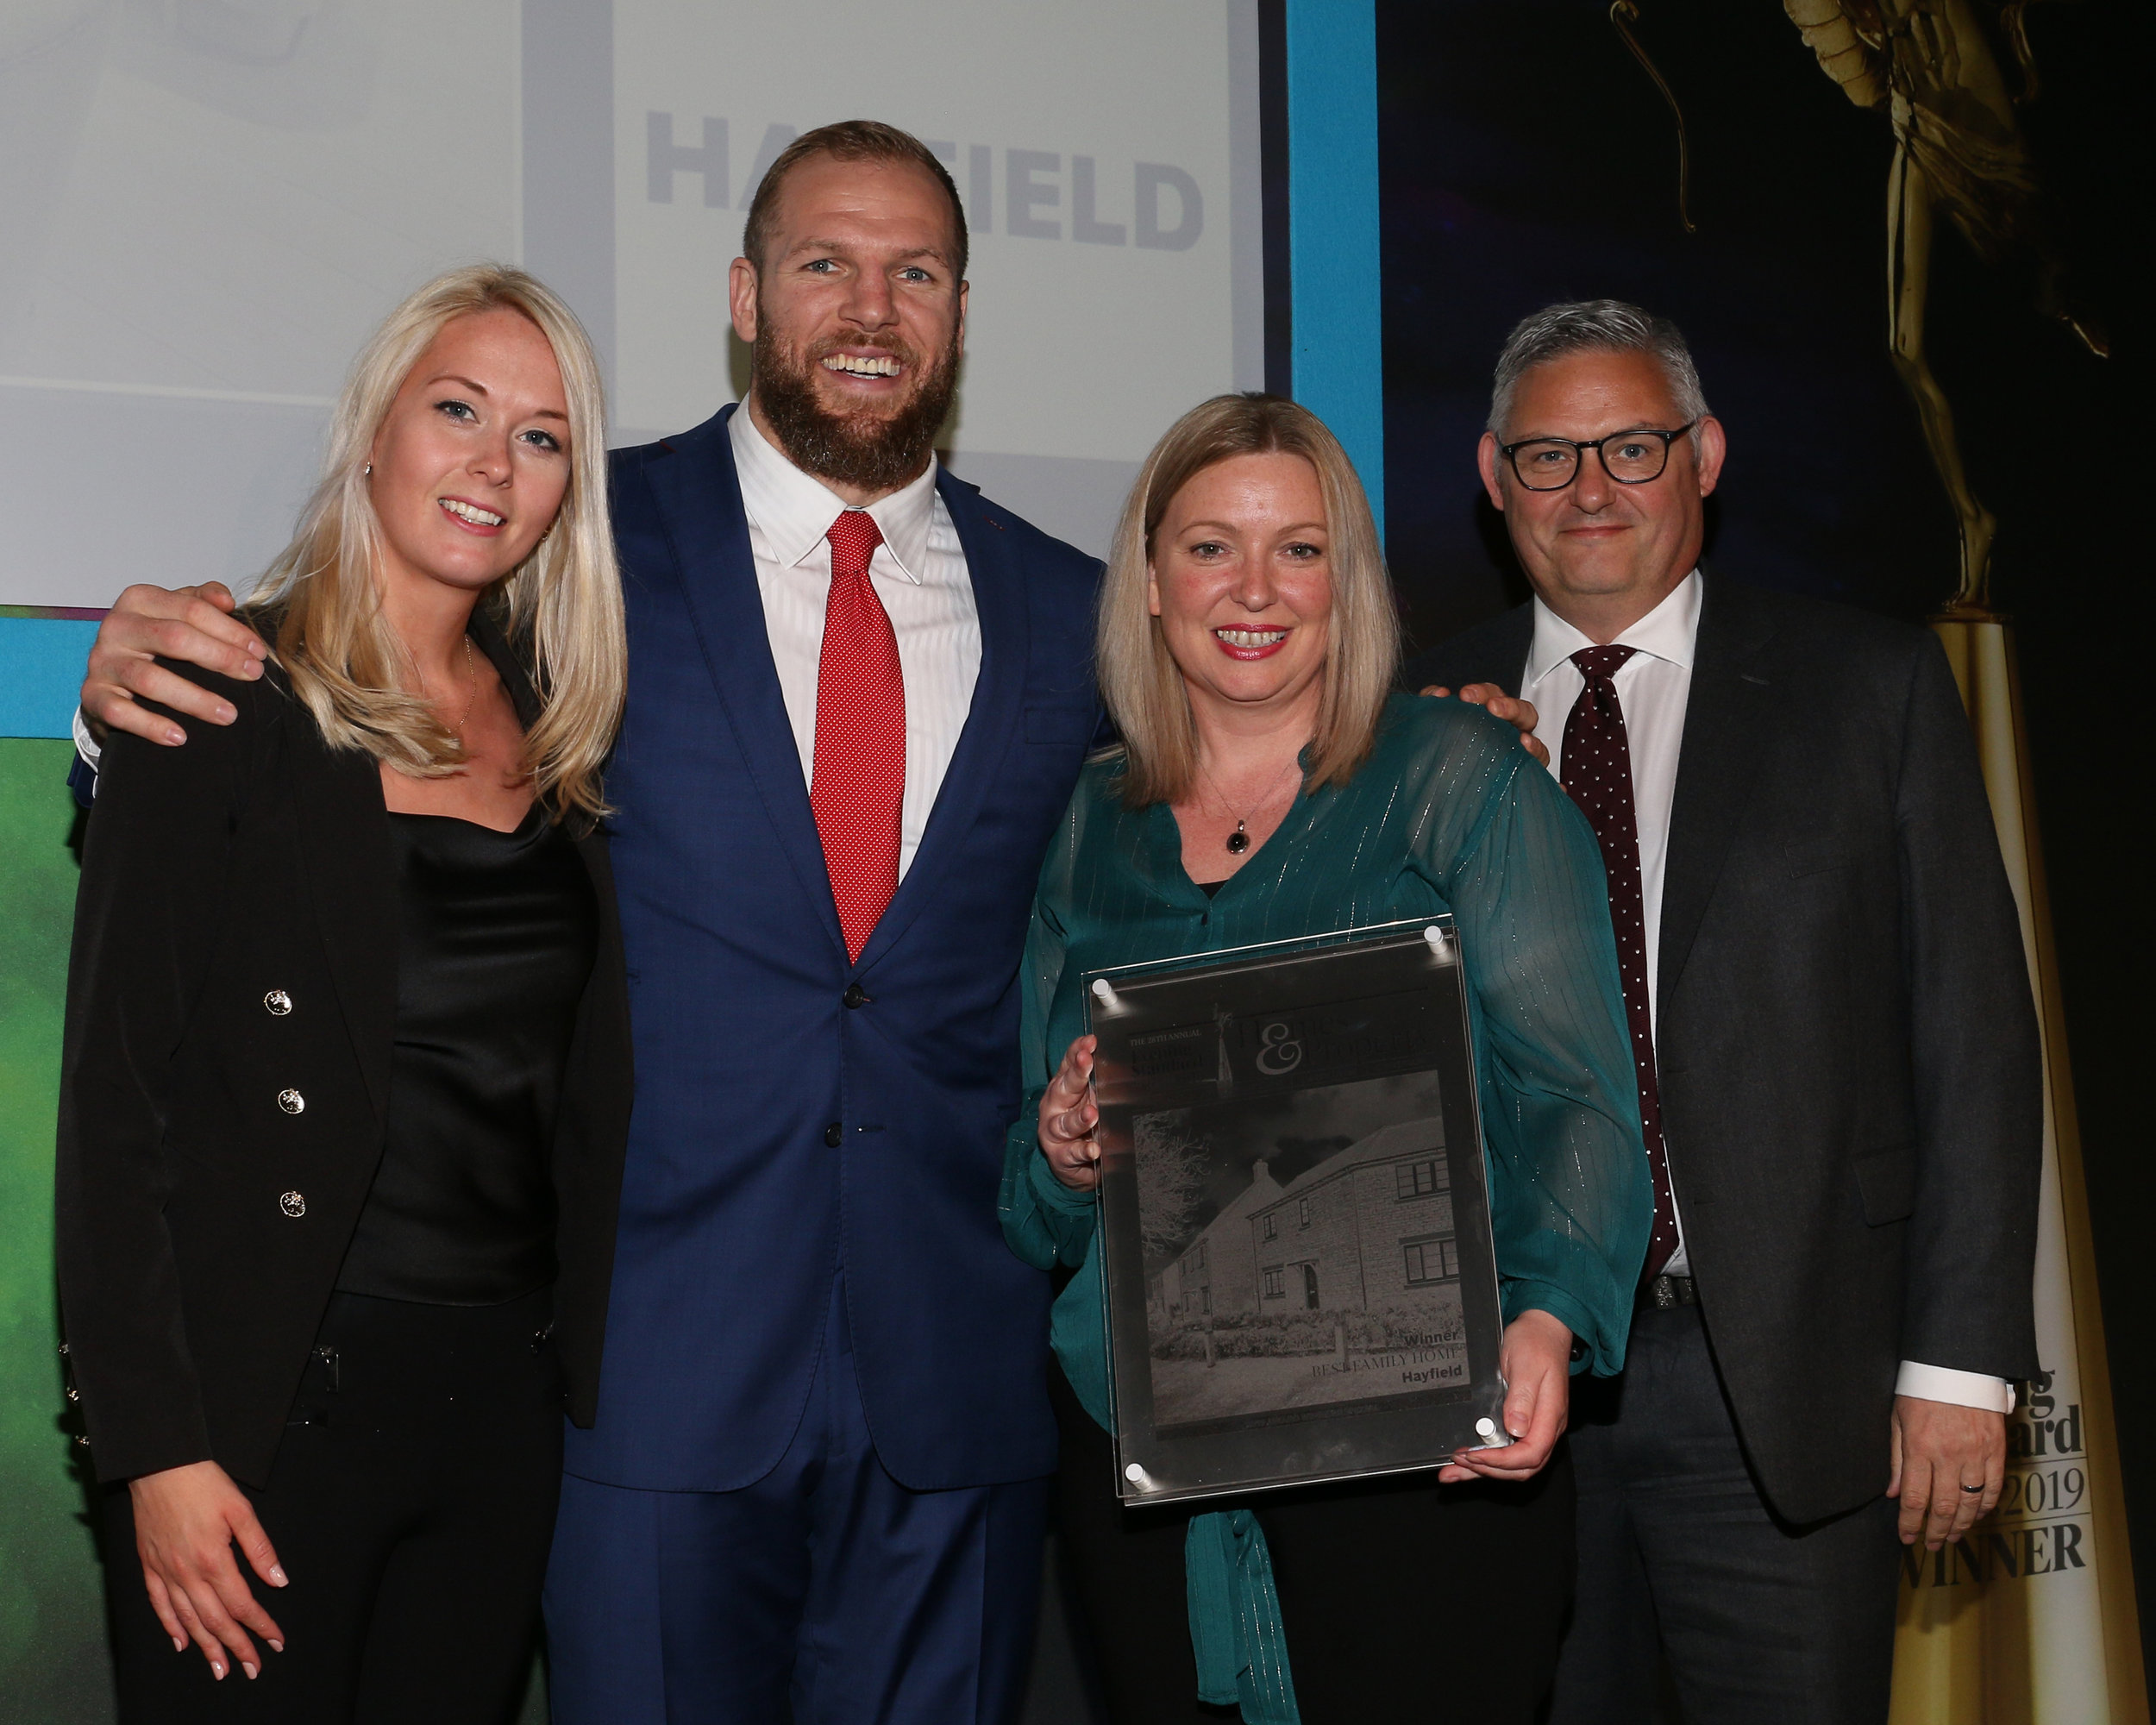 Maddie Robinson, Kelly Sharman and Mark Booth from Hayfield receive the Evening Standard award for Best Family Home from James Haskell.jpg